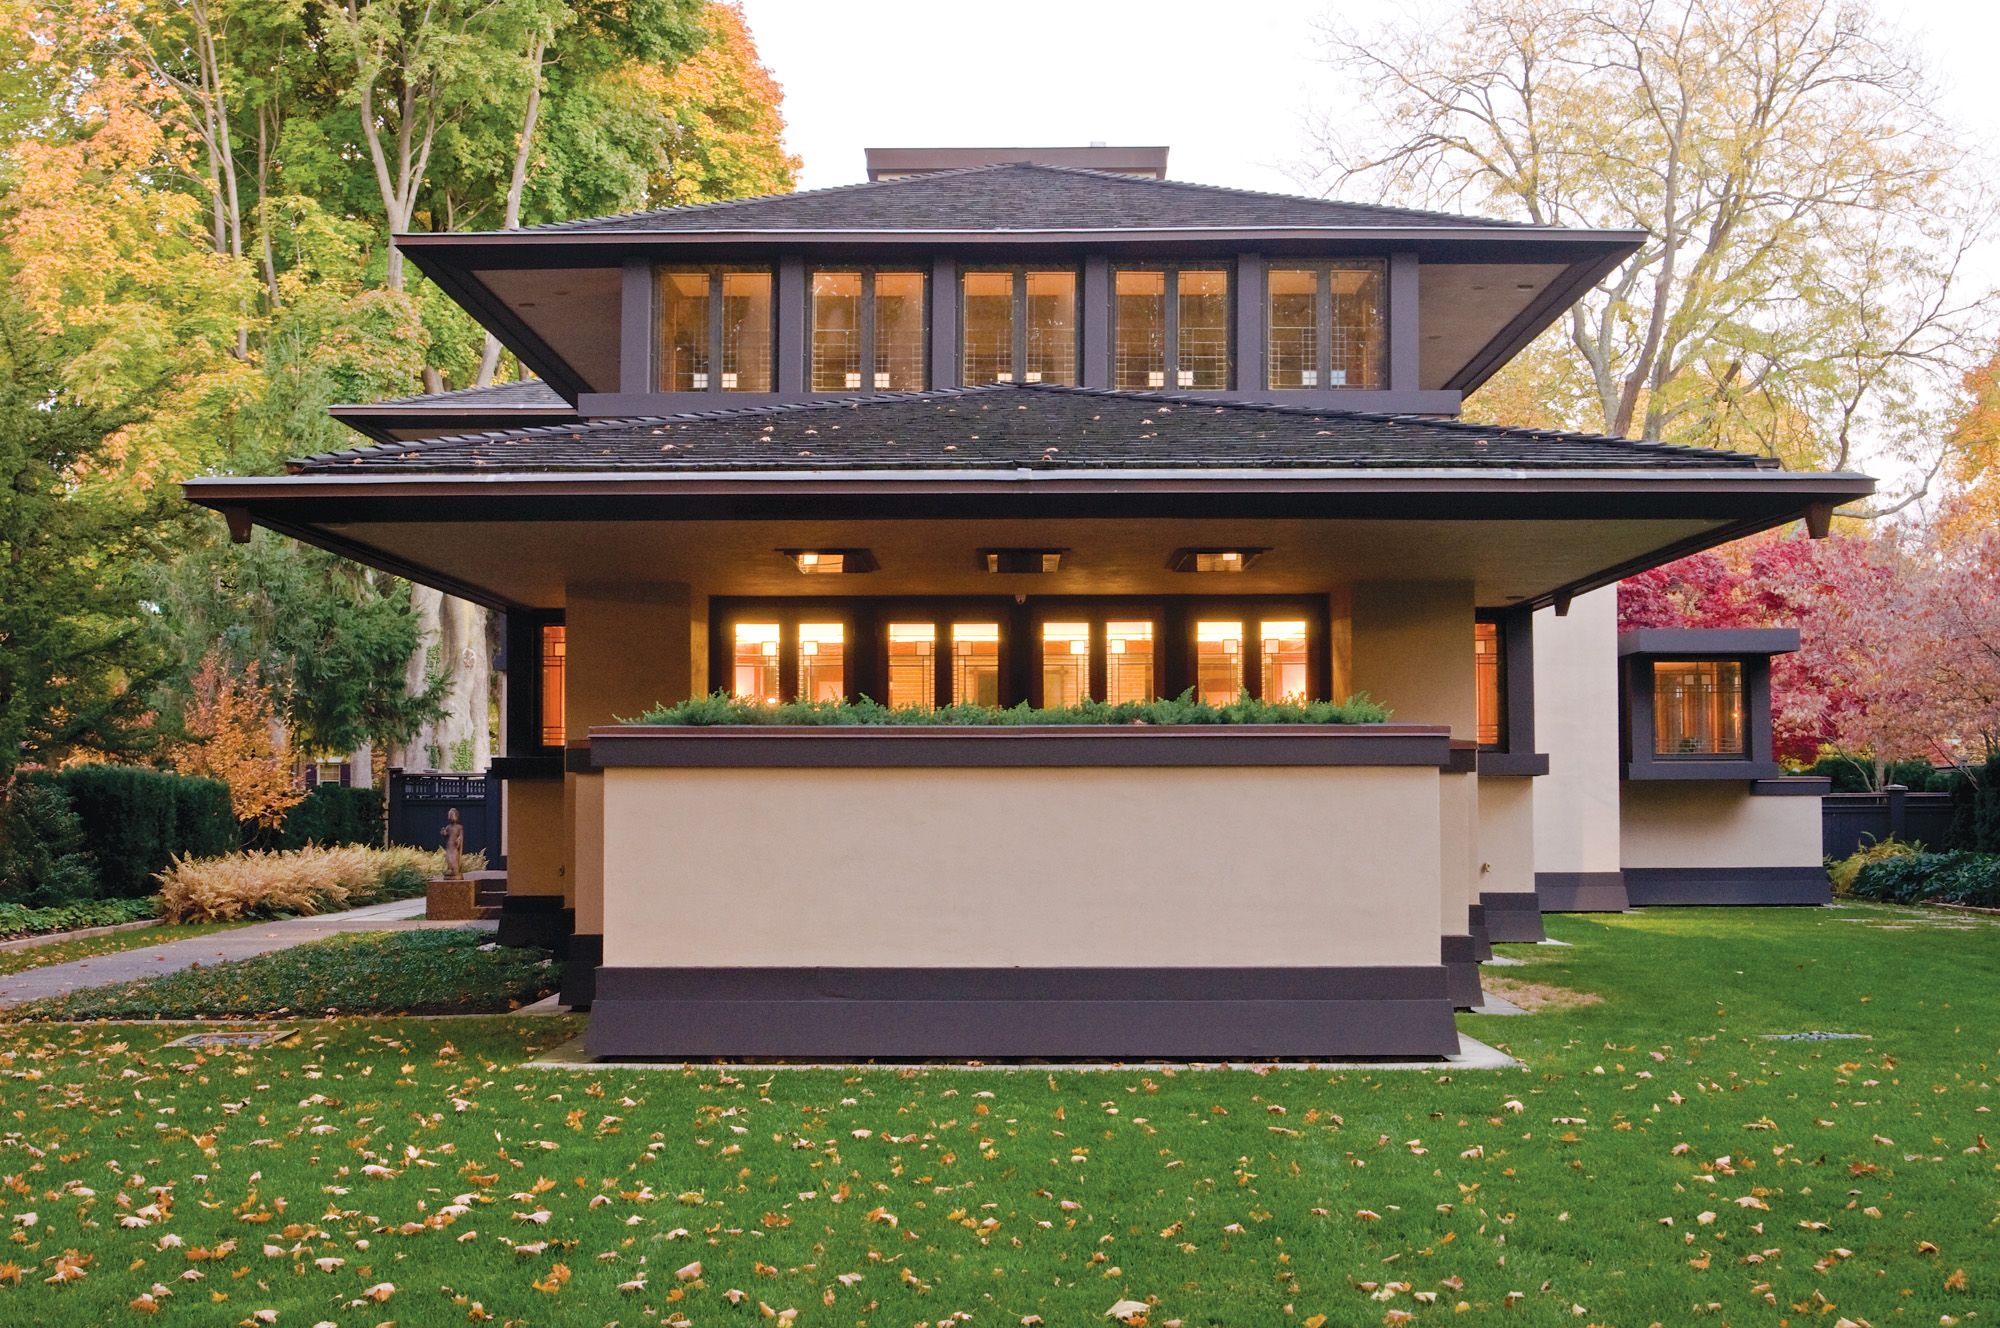 Frank Lloyd Wright Prairie School home